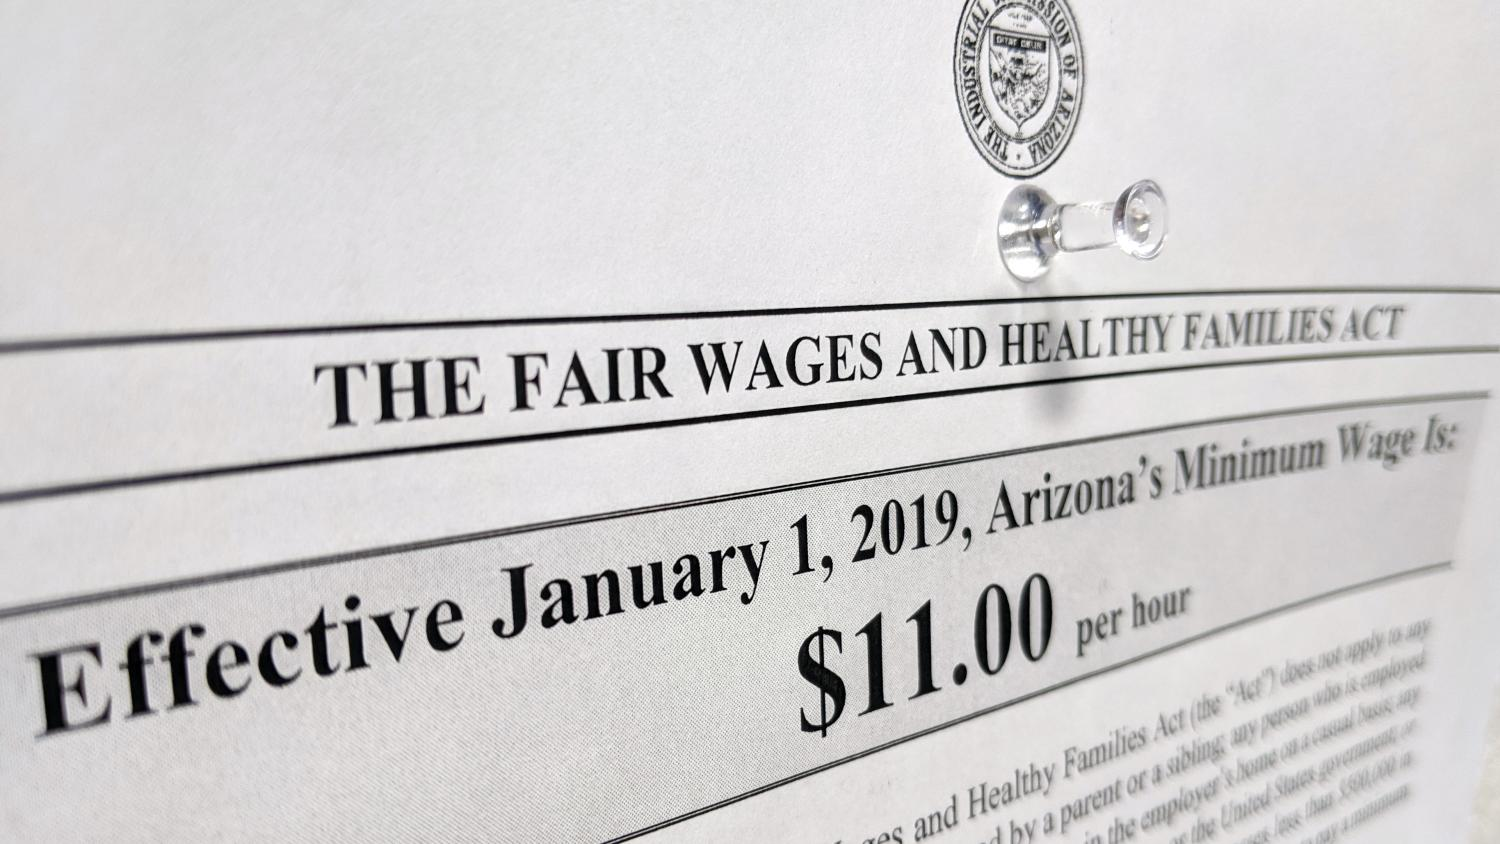 Arizona Holds Public Meeting On Subminimum Wages | Fronteras